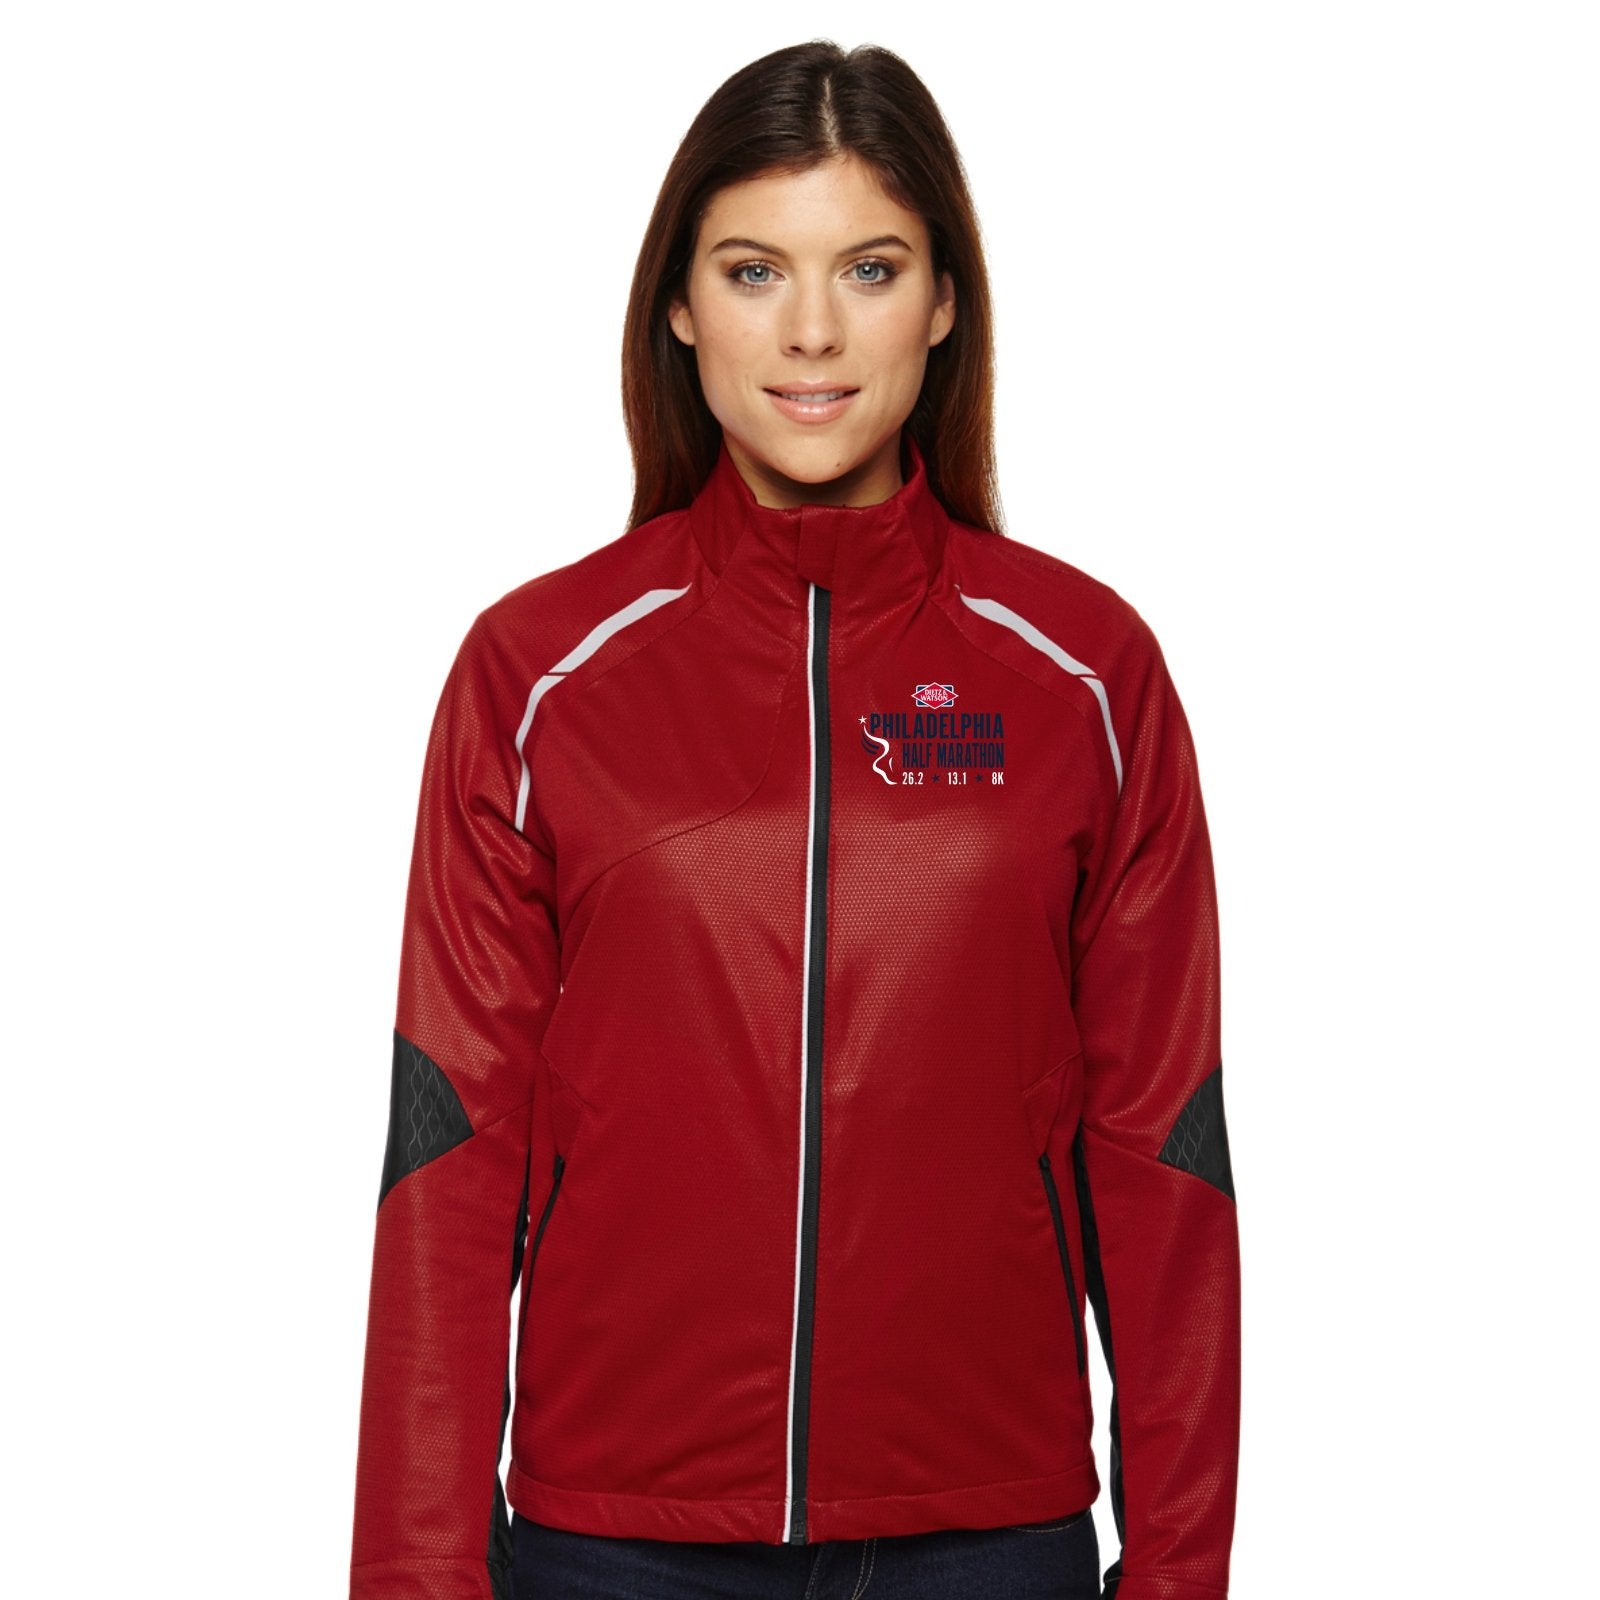 Women's 'Dynamo' Bonded Zip Jacket -Olympic Red 'Left Chest Embr. Design' - Dietz & Watson Philadelphia Half Marathon